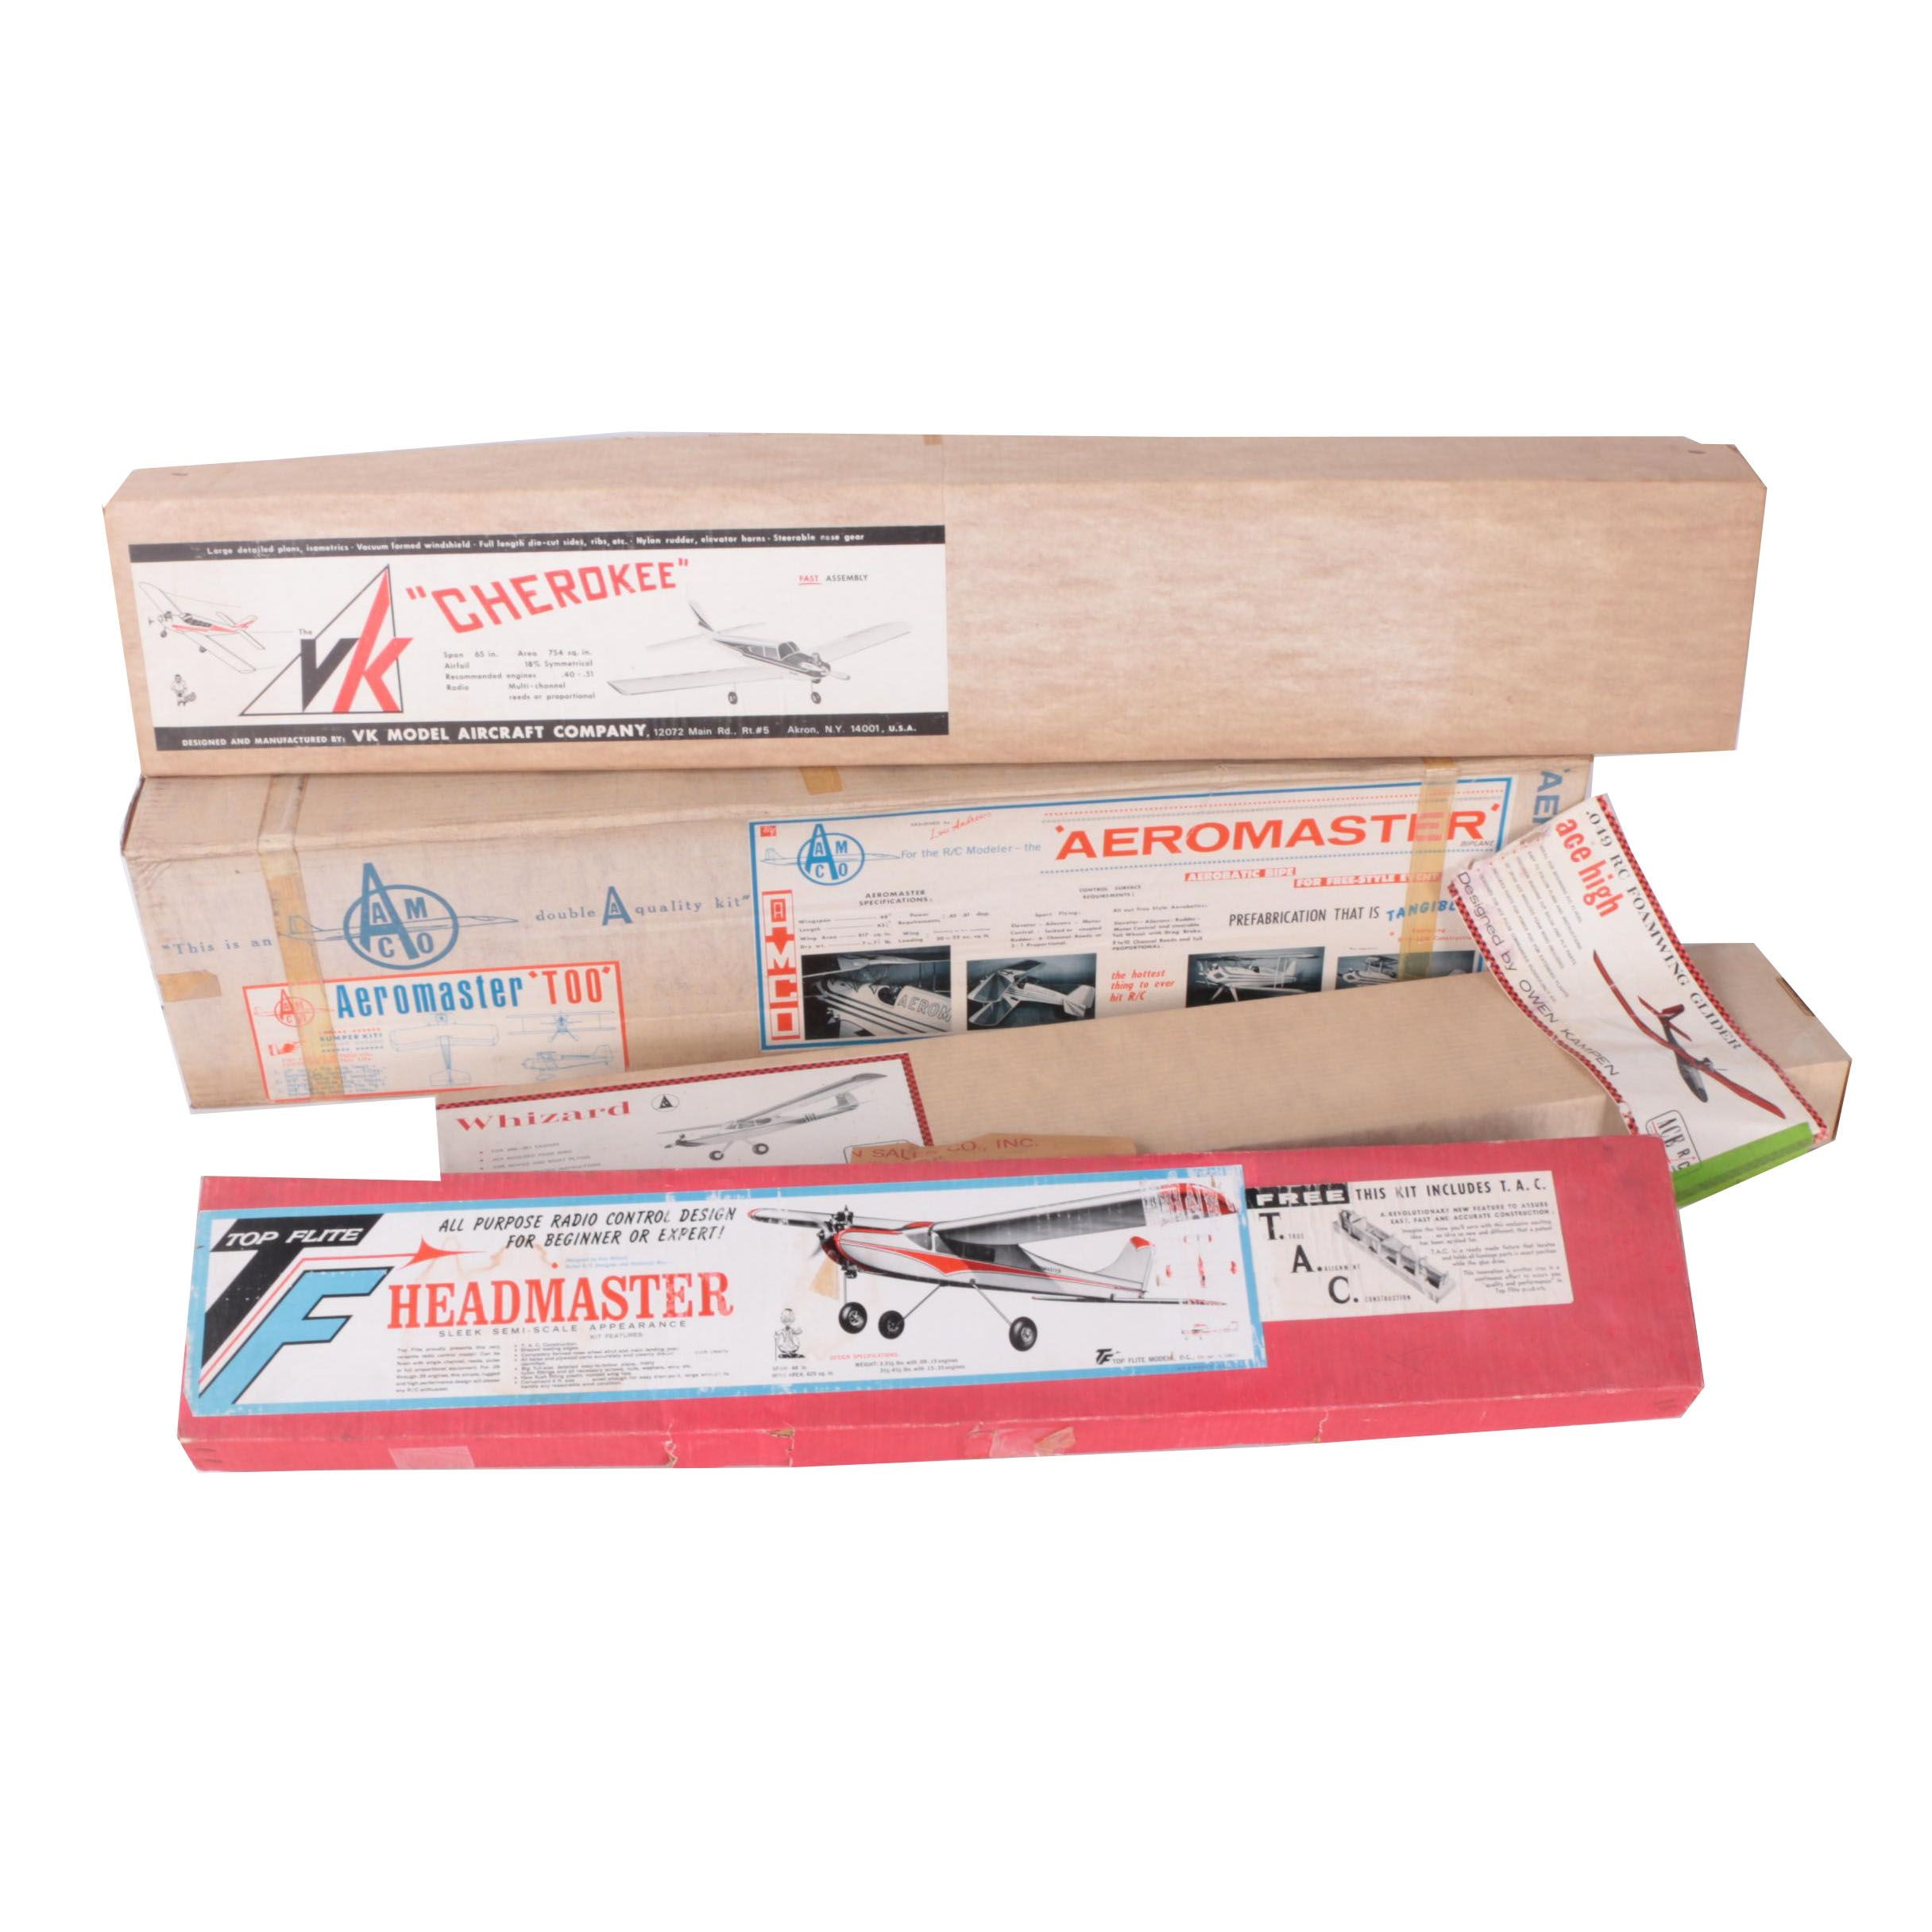 Vintage VK, AMCO, Top Flite, and ACE RC Model Airplane Kits